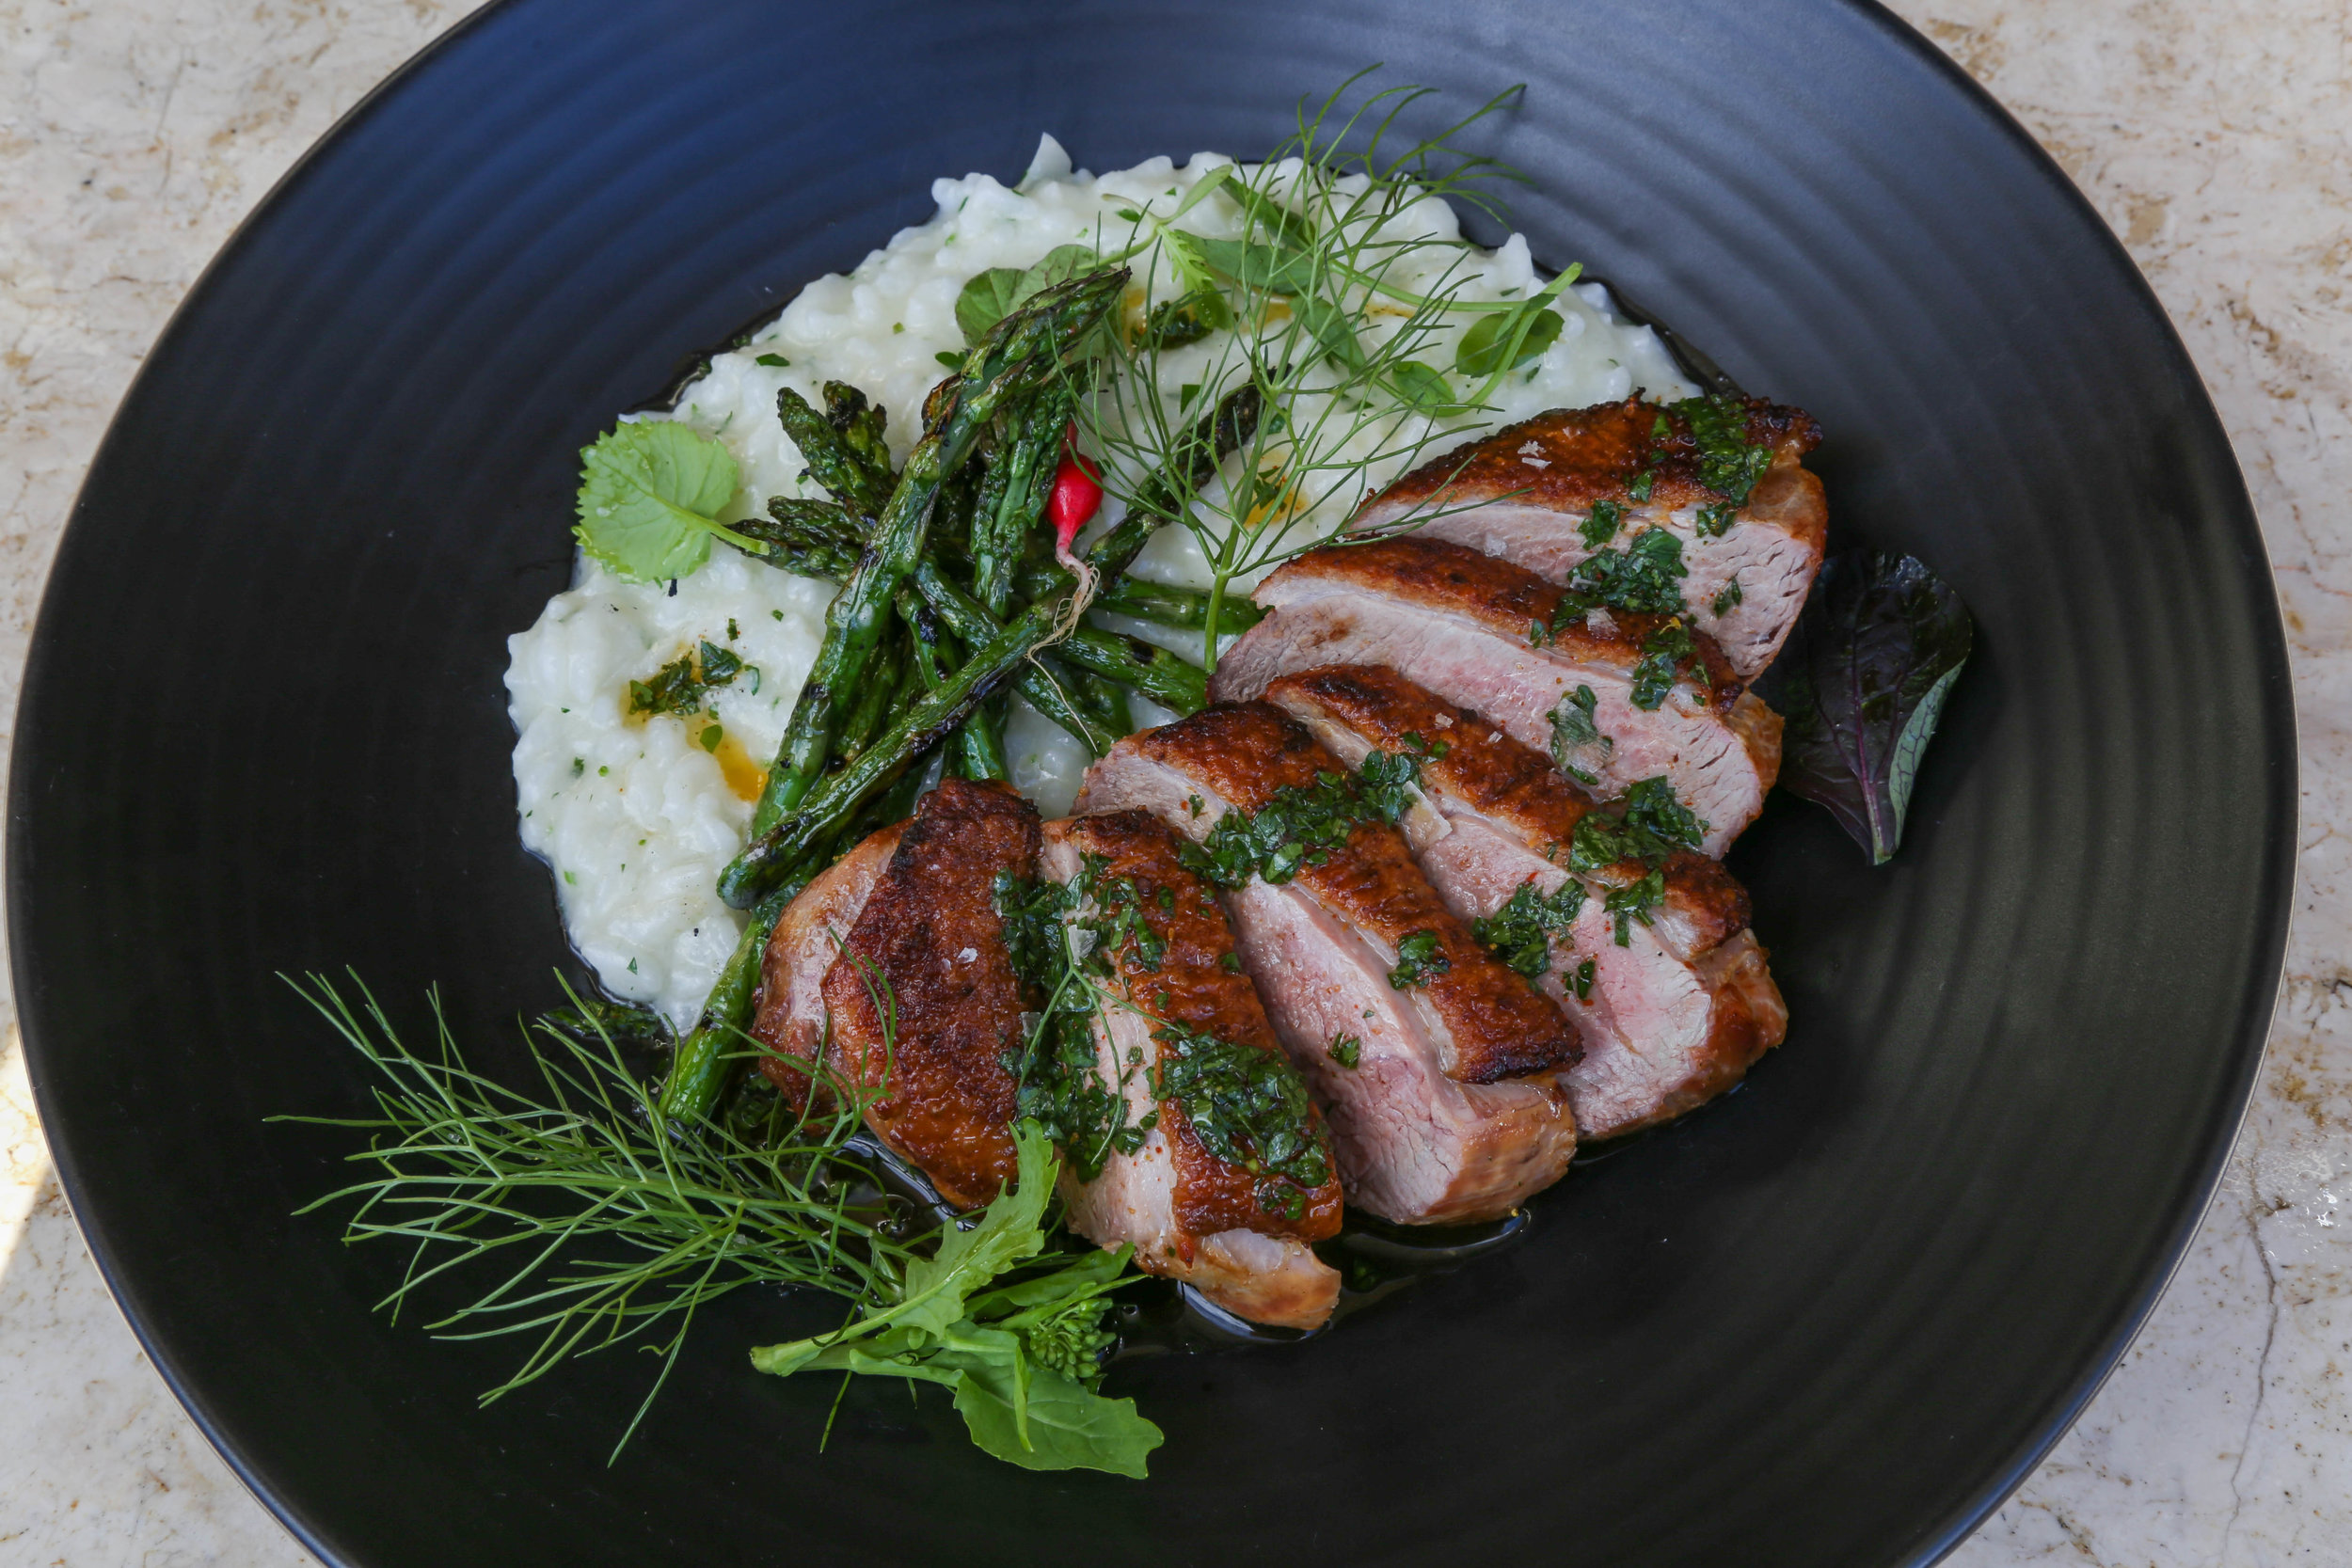 SEARED DUCK BREAST on a recent Sunday Supper in The Gallery, with citrus risotto, pickled chicory, roasted asparagus, fresh garden herbs.